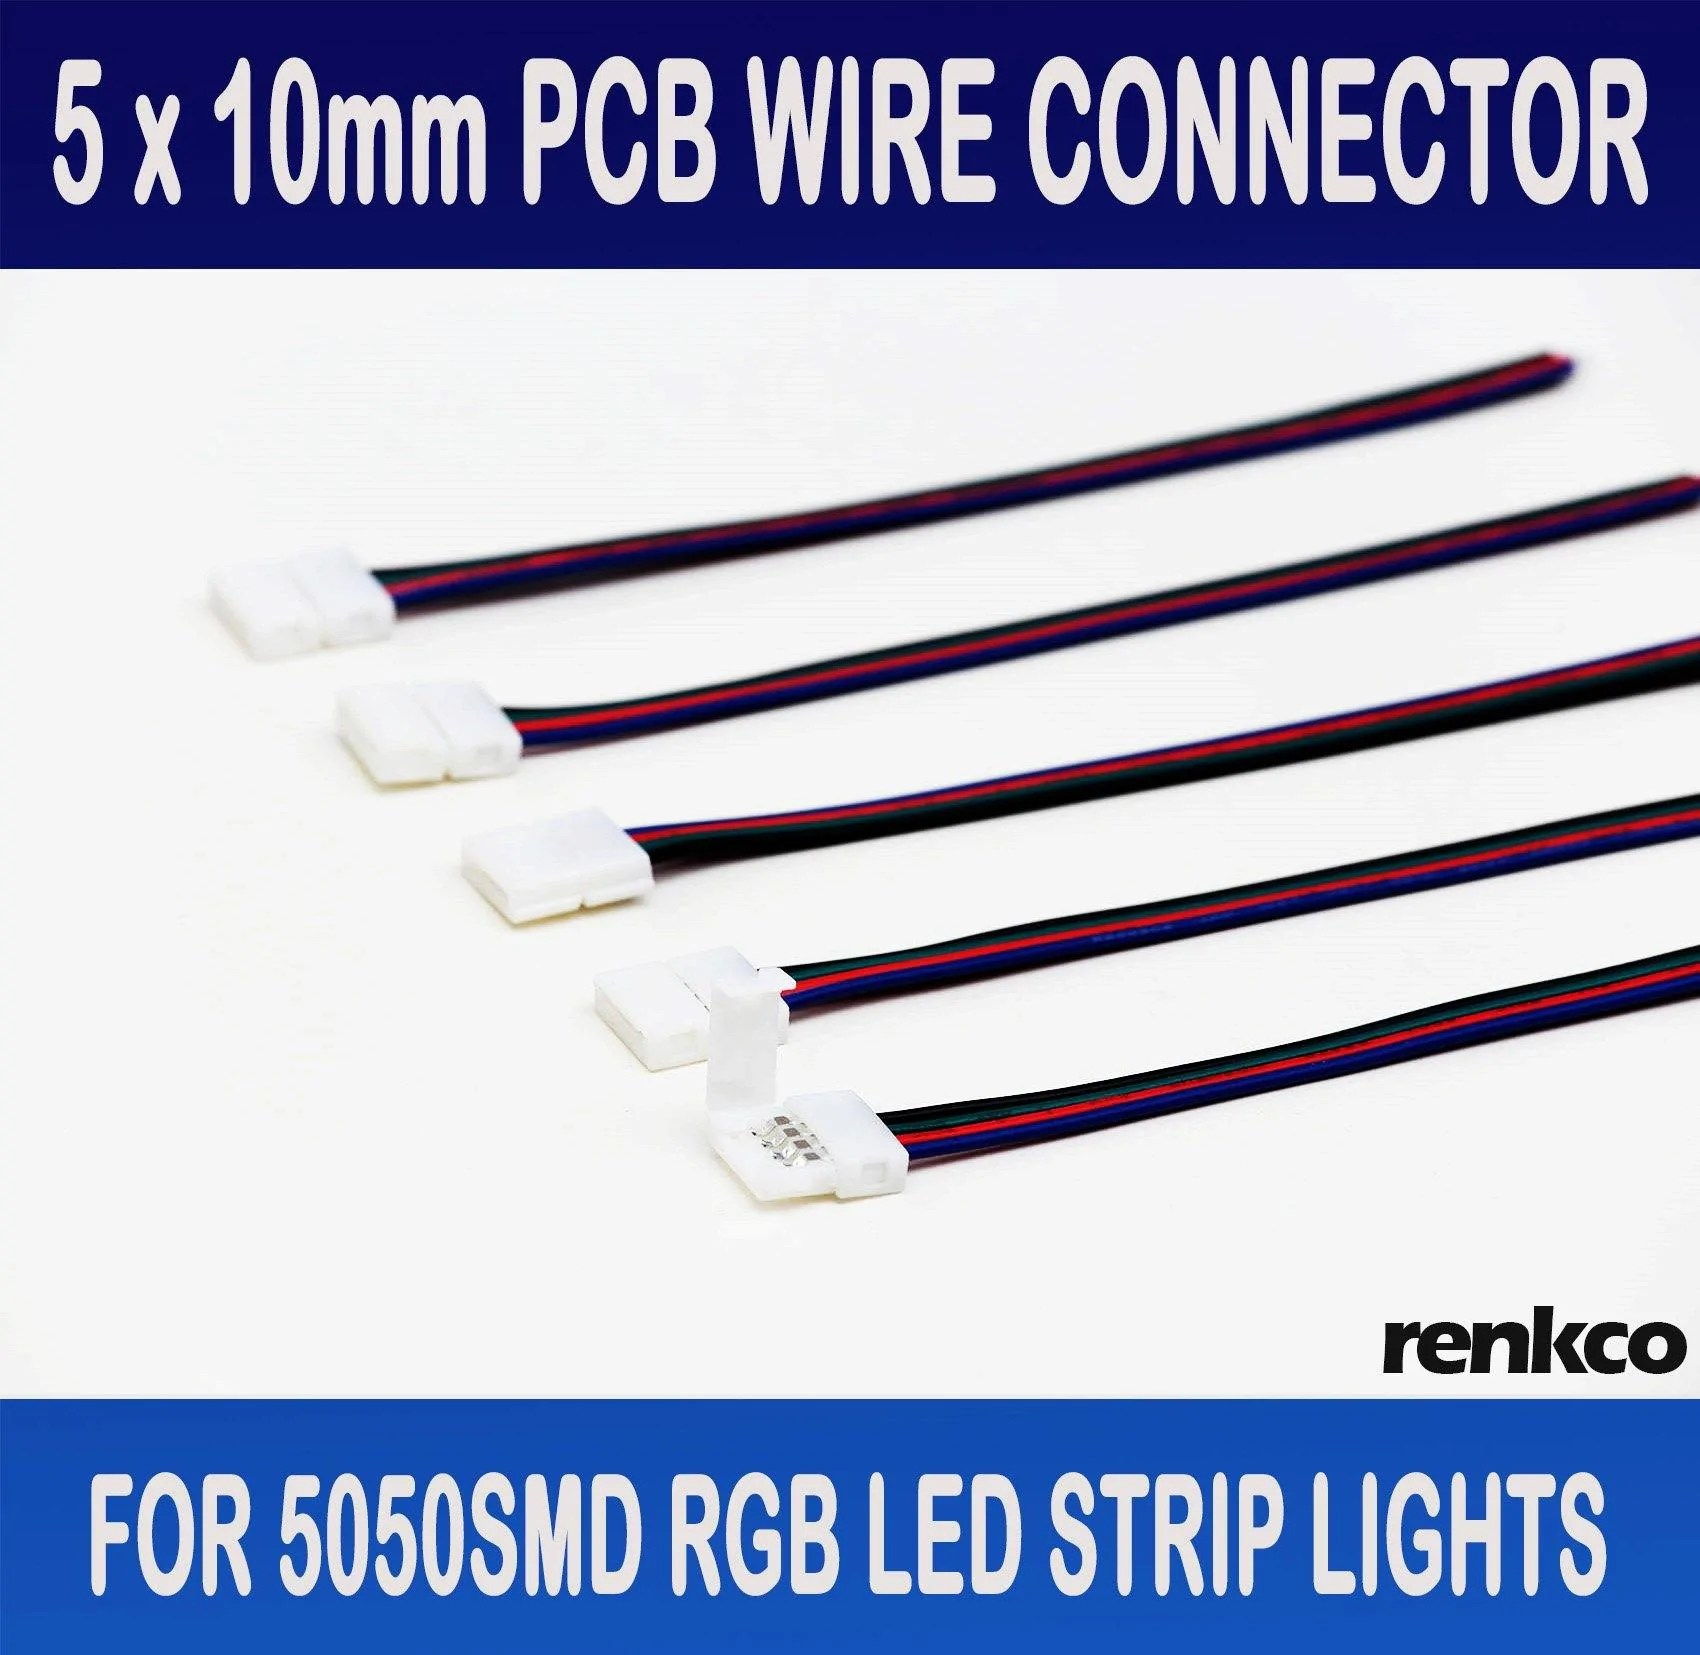 renkco 5pcs 10mm pcb board with wire connector for 5050 rgb led strip lights leds [ 1700 x 1655 Pixel ]